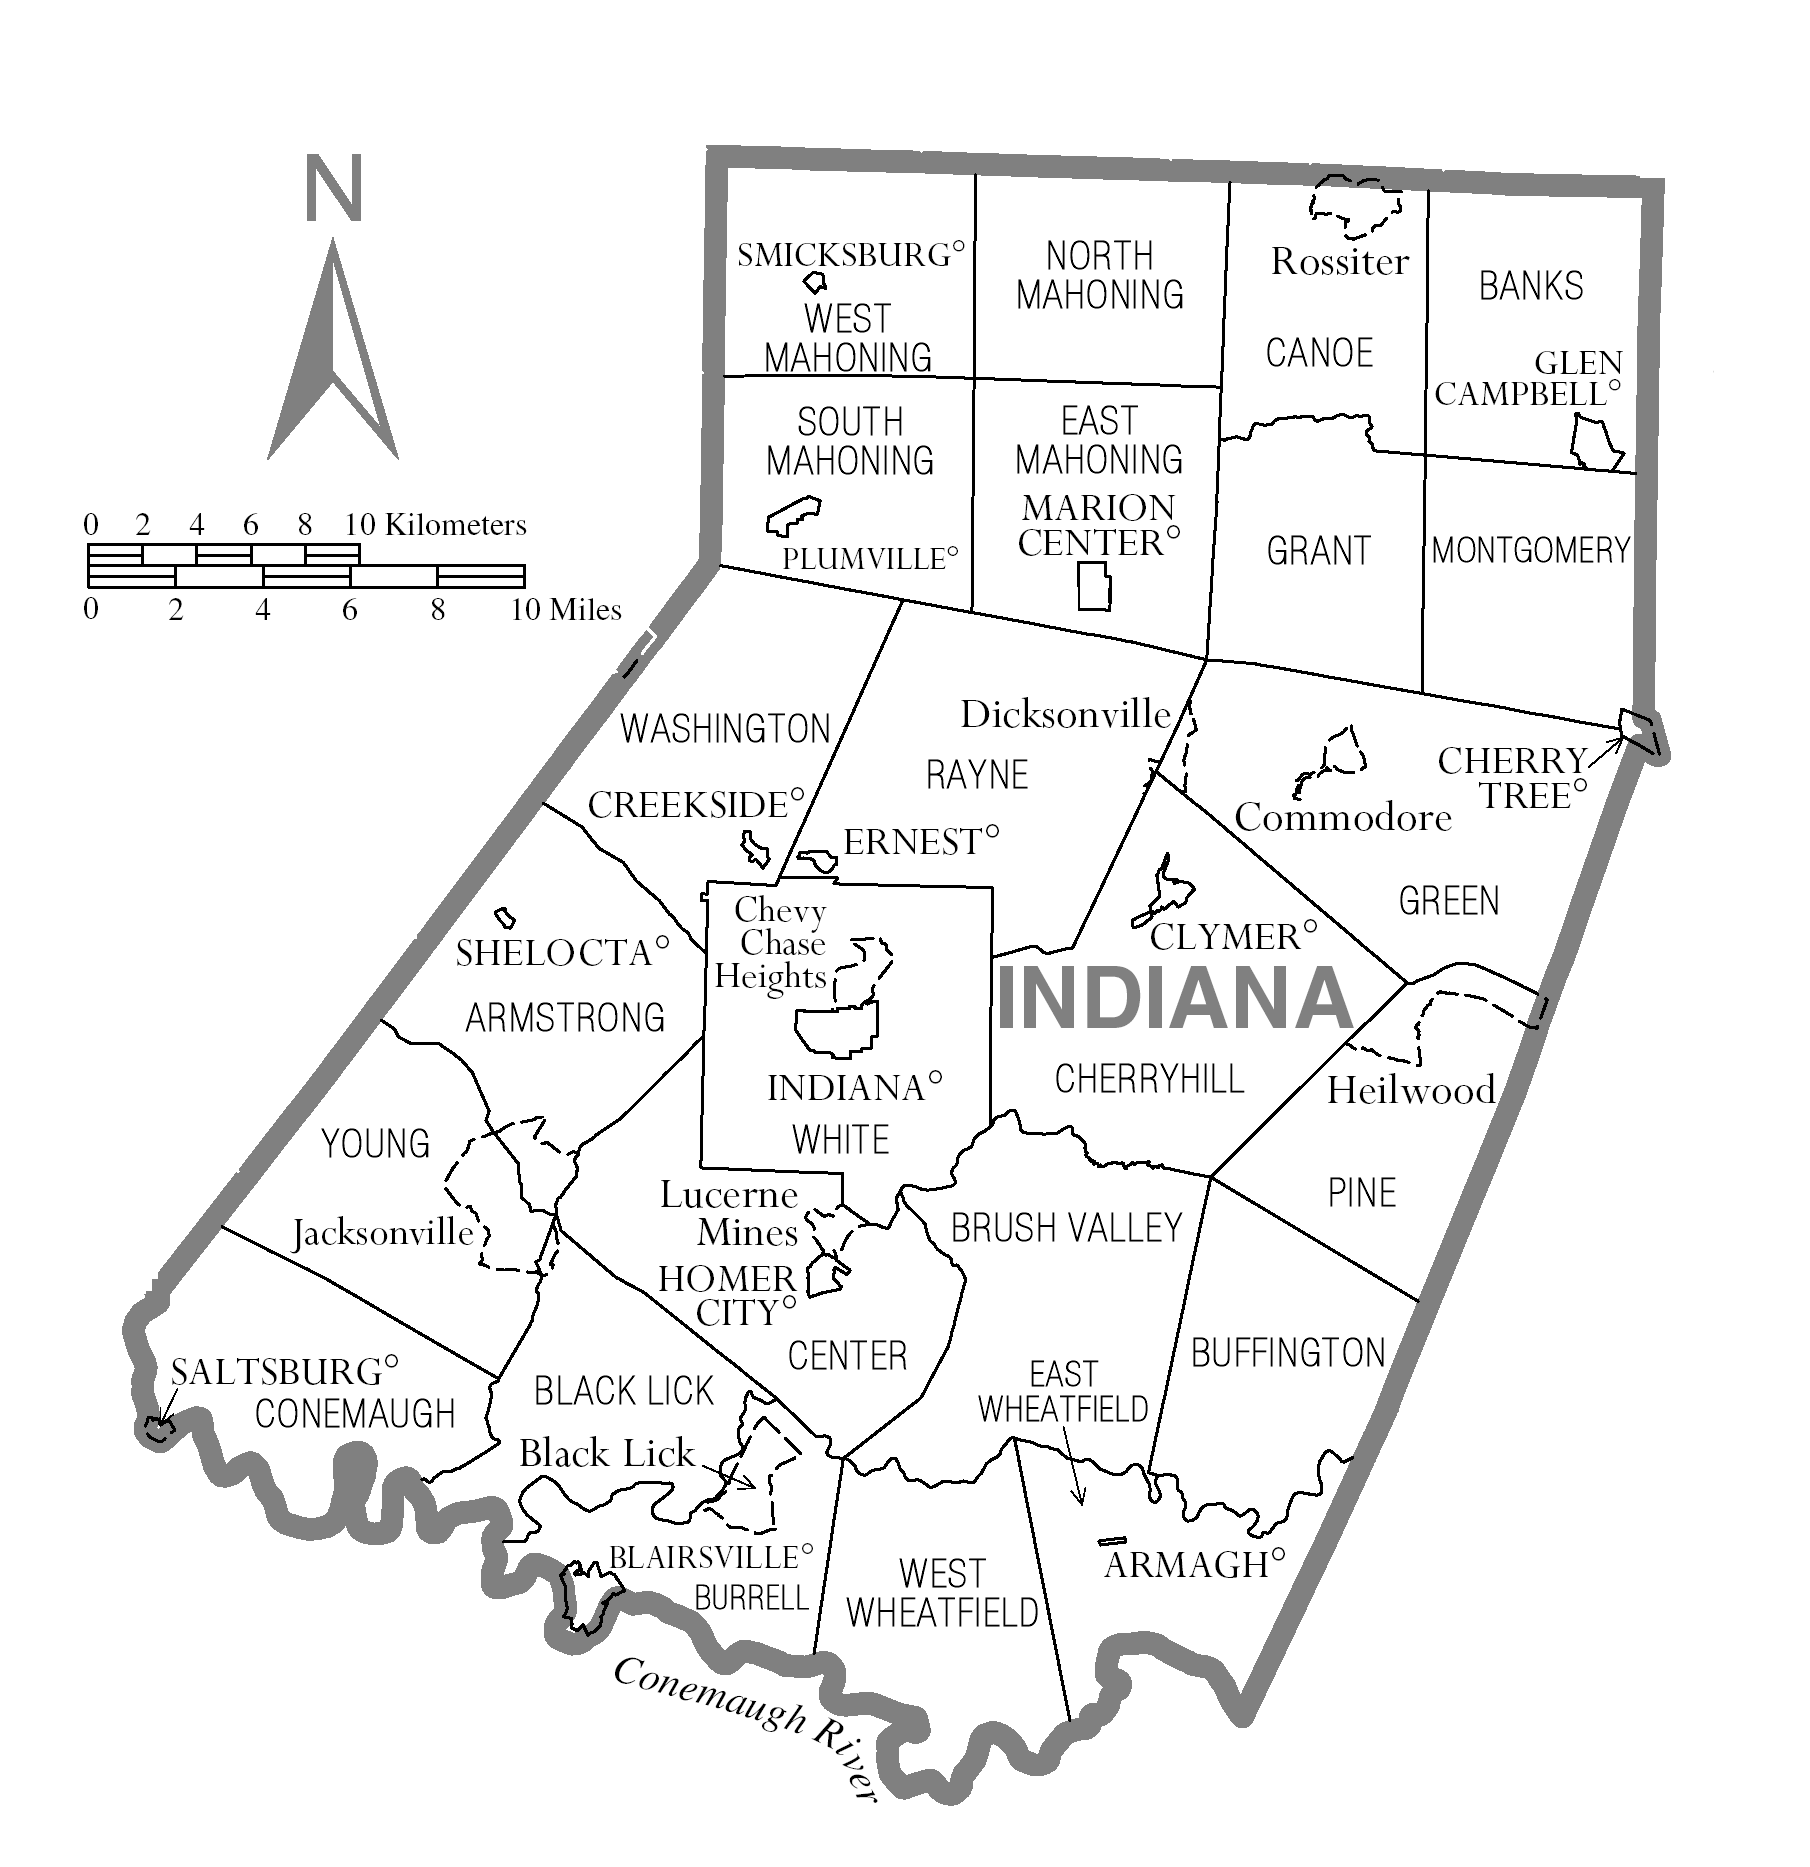 FileMap Of Indiana County Pennsylvaniapng Wikimedia Commons - Map of indiana county us census